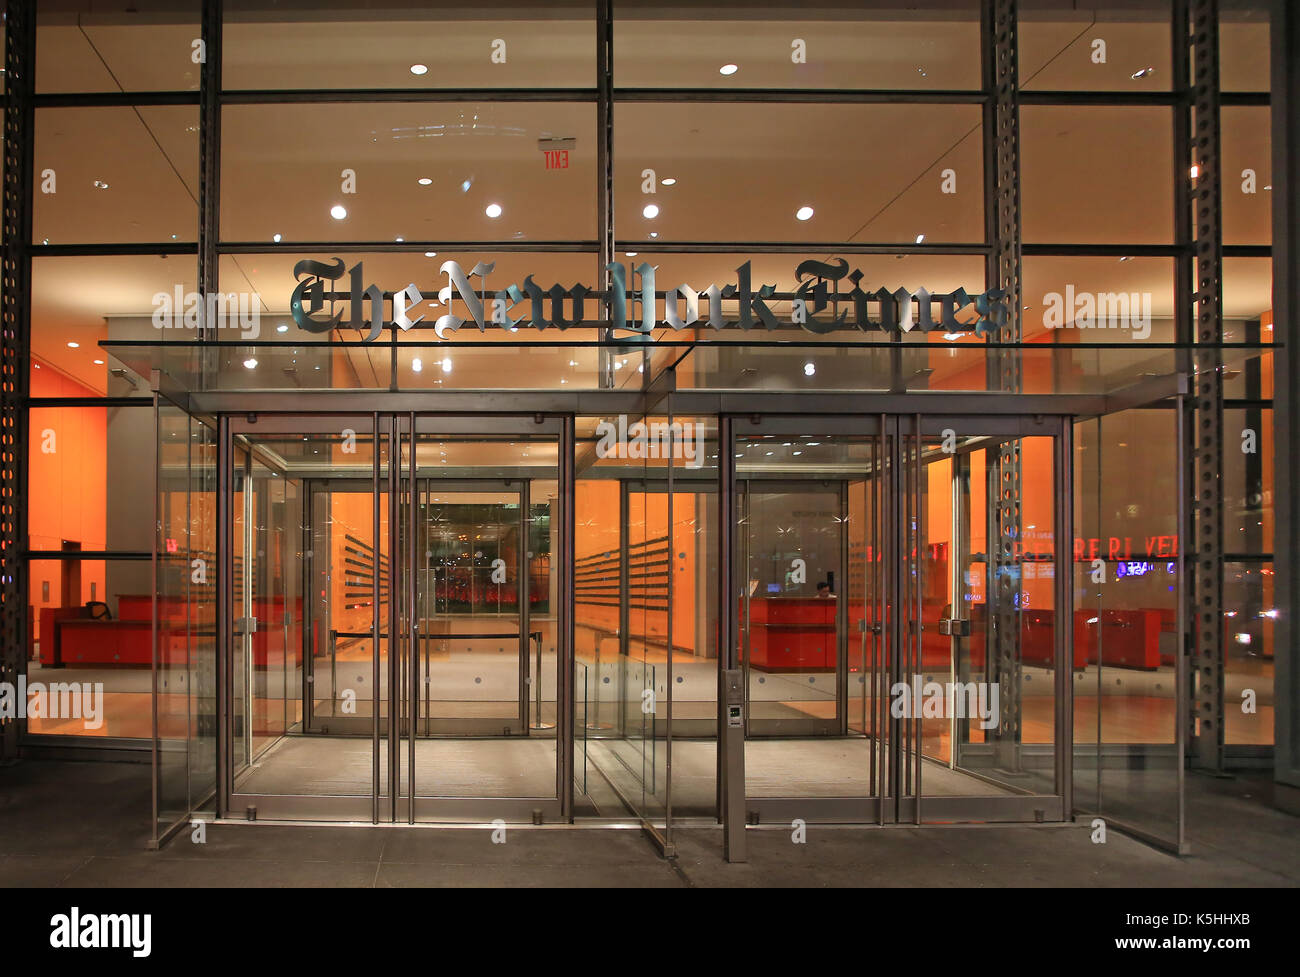 the new york time - Stock Image